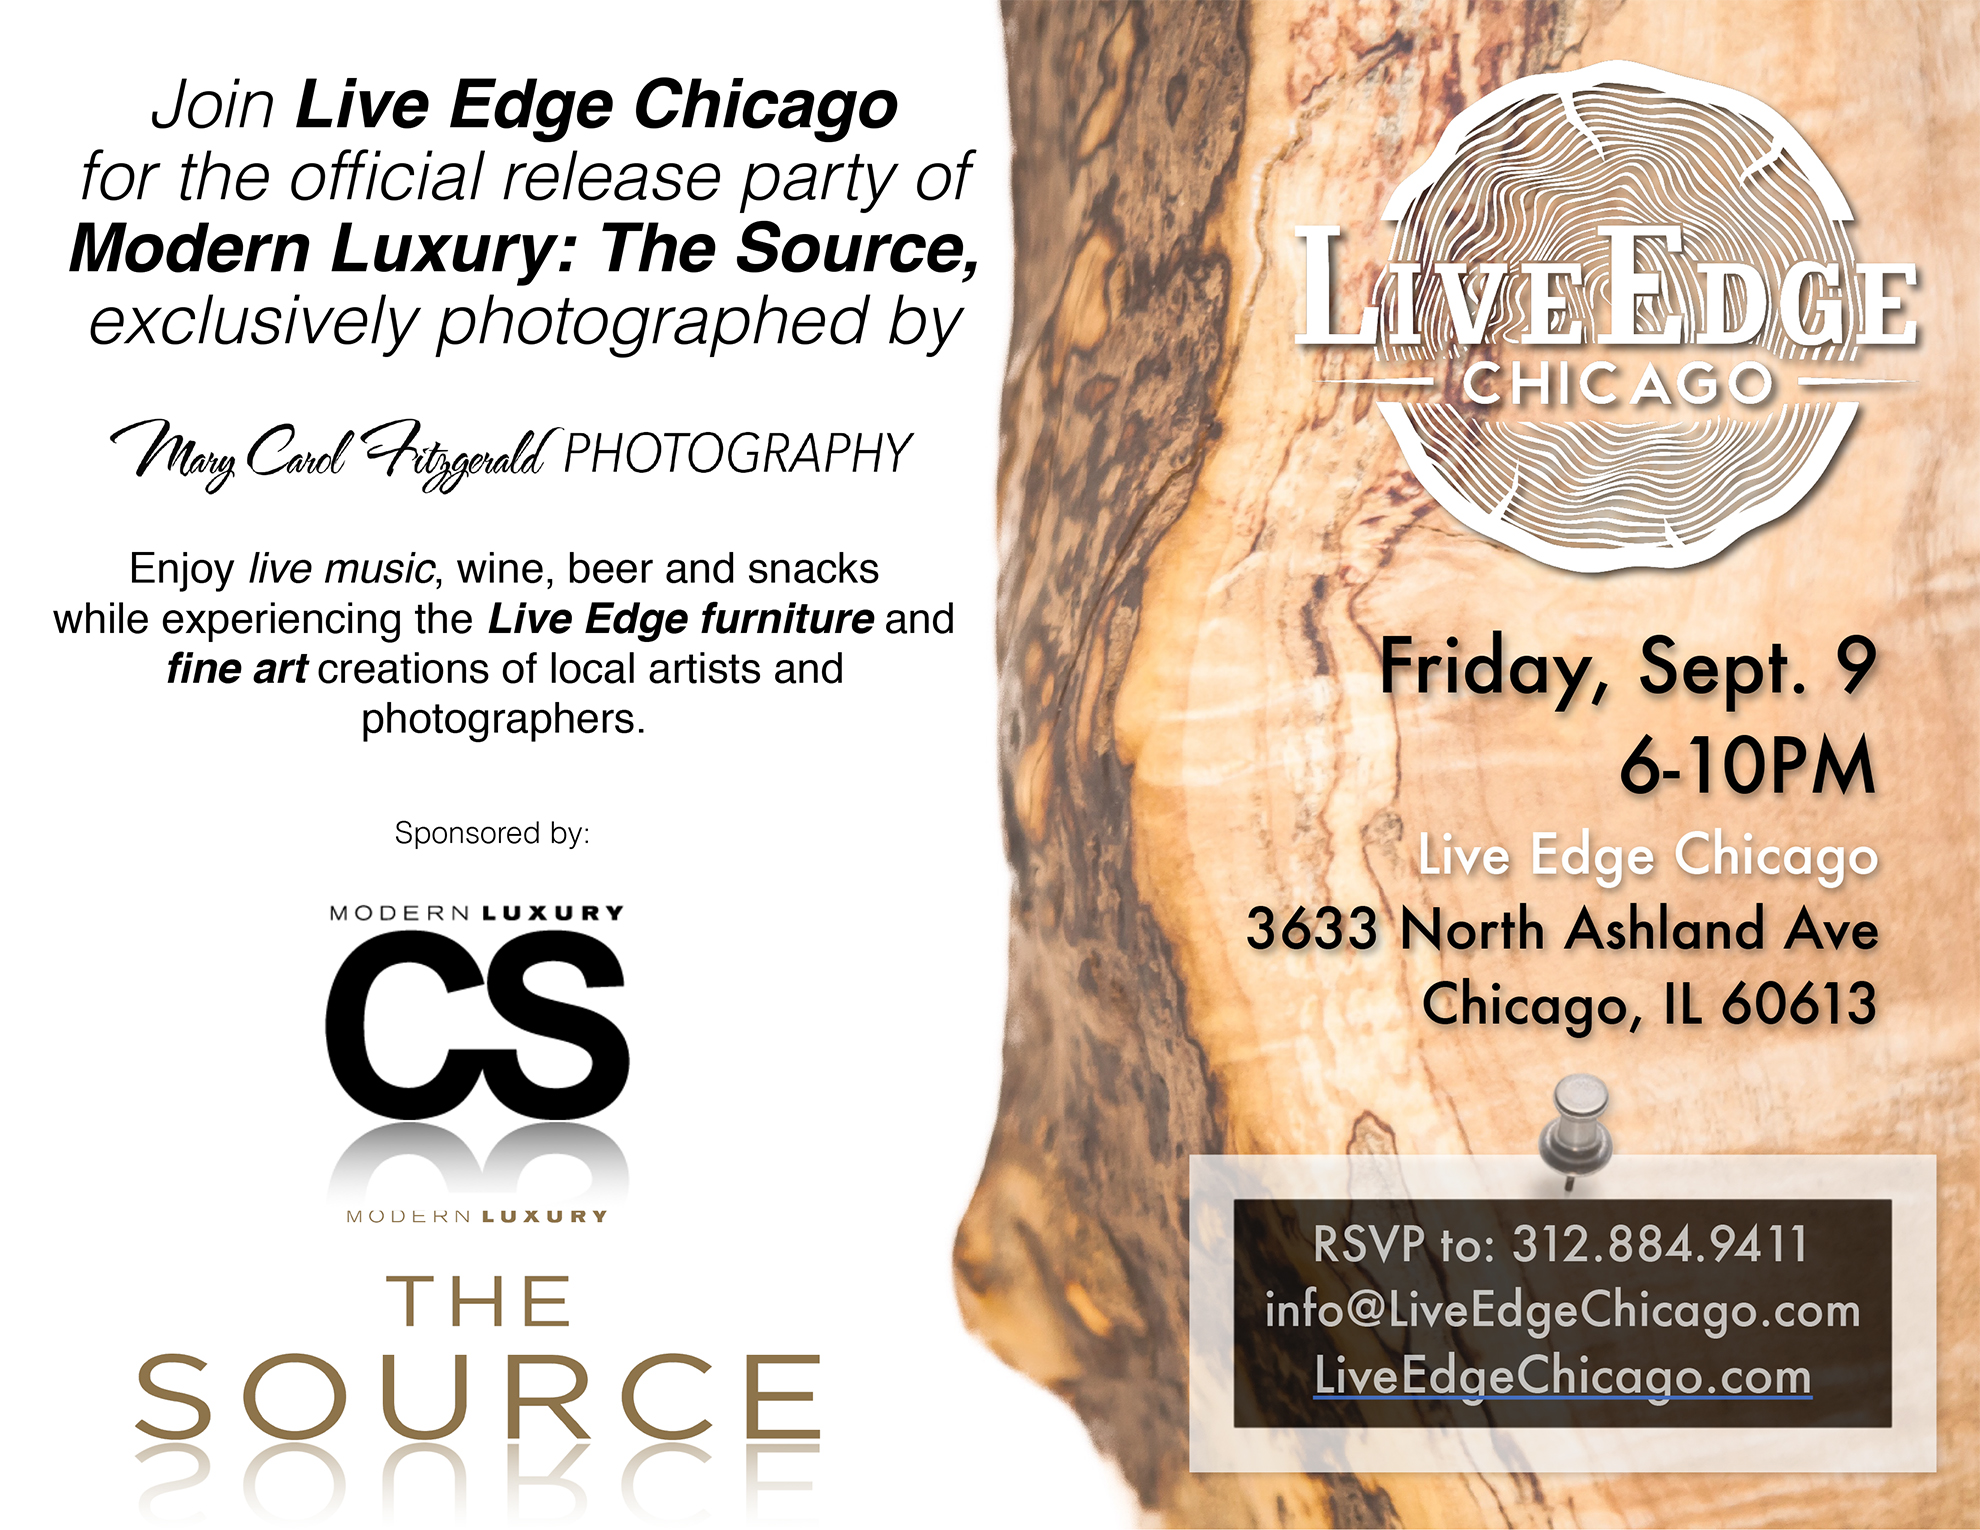 LIVE-EDGE-CHICAGO_INVITE_Sept 9 2016_The-Source-CS-Launch-Mary-Carol-Fitzgerald-Photography (180dpi)).jpg